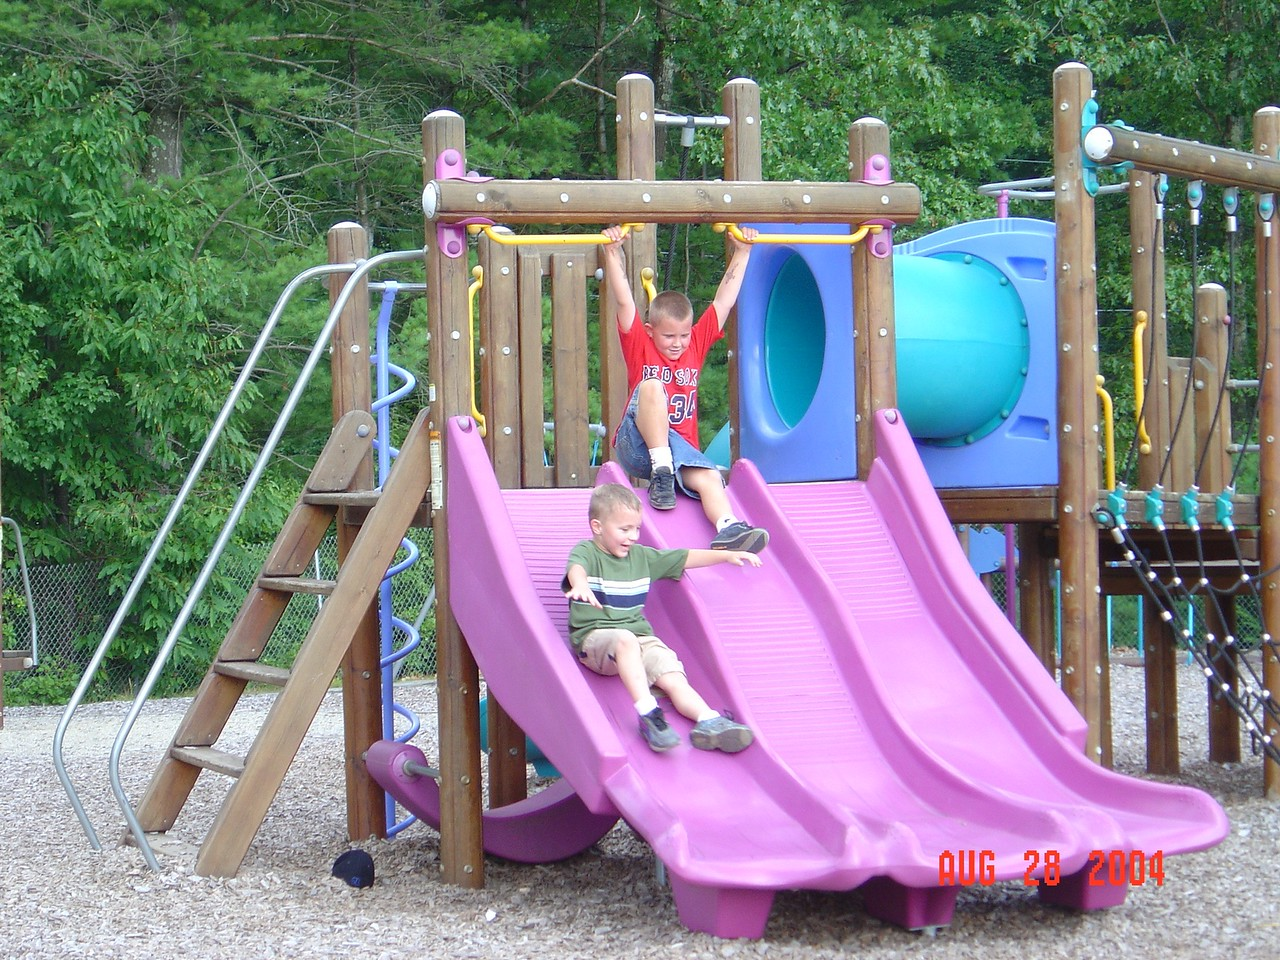 Tyler_and_Dylan_slide_at_Dylan's_party_08-28-04